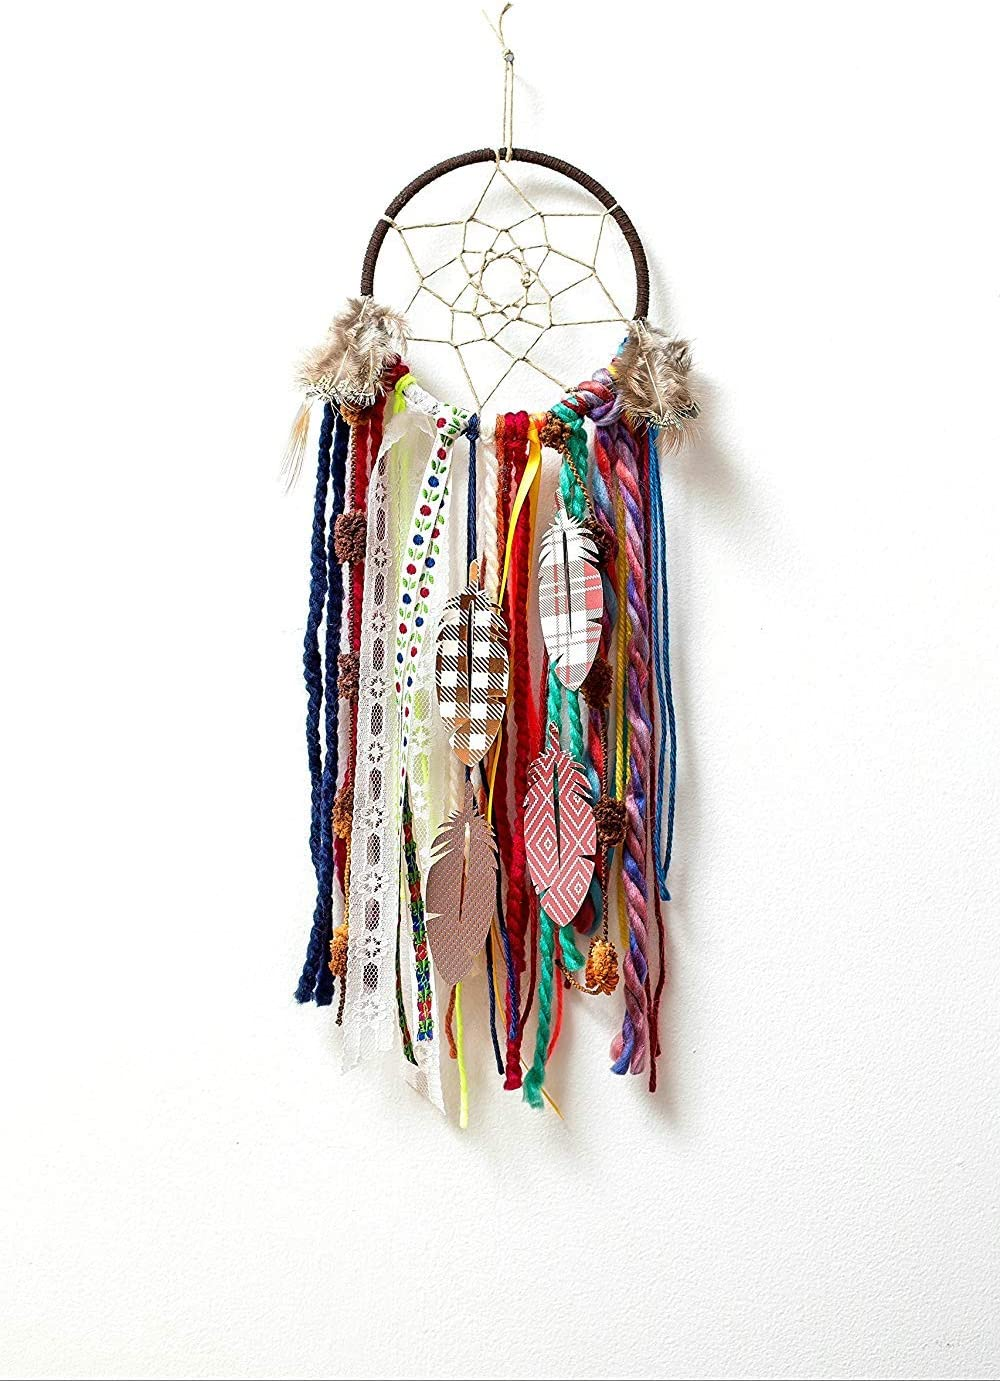 150pcs Feathers in 6 Styled and 10 Colors 3 mm Faux Suede Cord for Dream Catcher Crafts Birthday Party 15pcs Gold Metal Rings in 5 Size Dream Catcher Making Kit